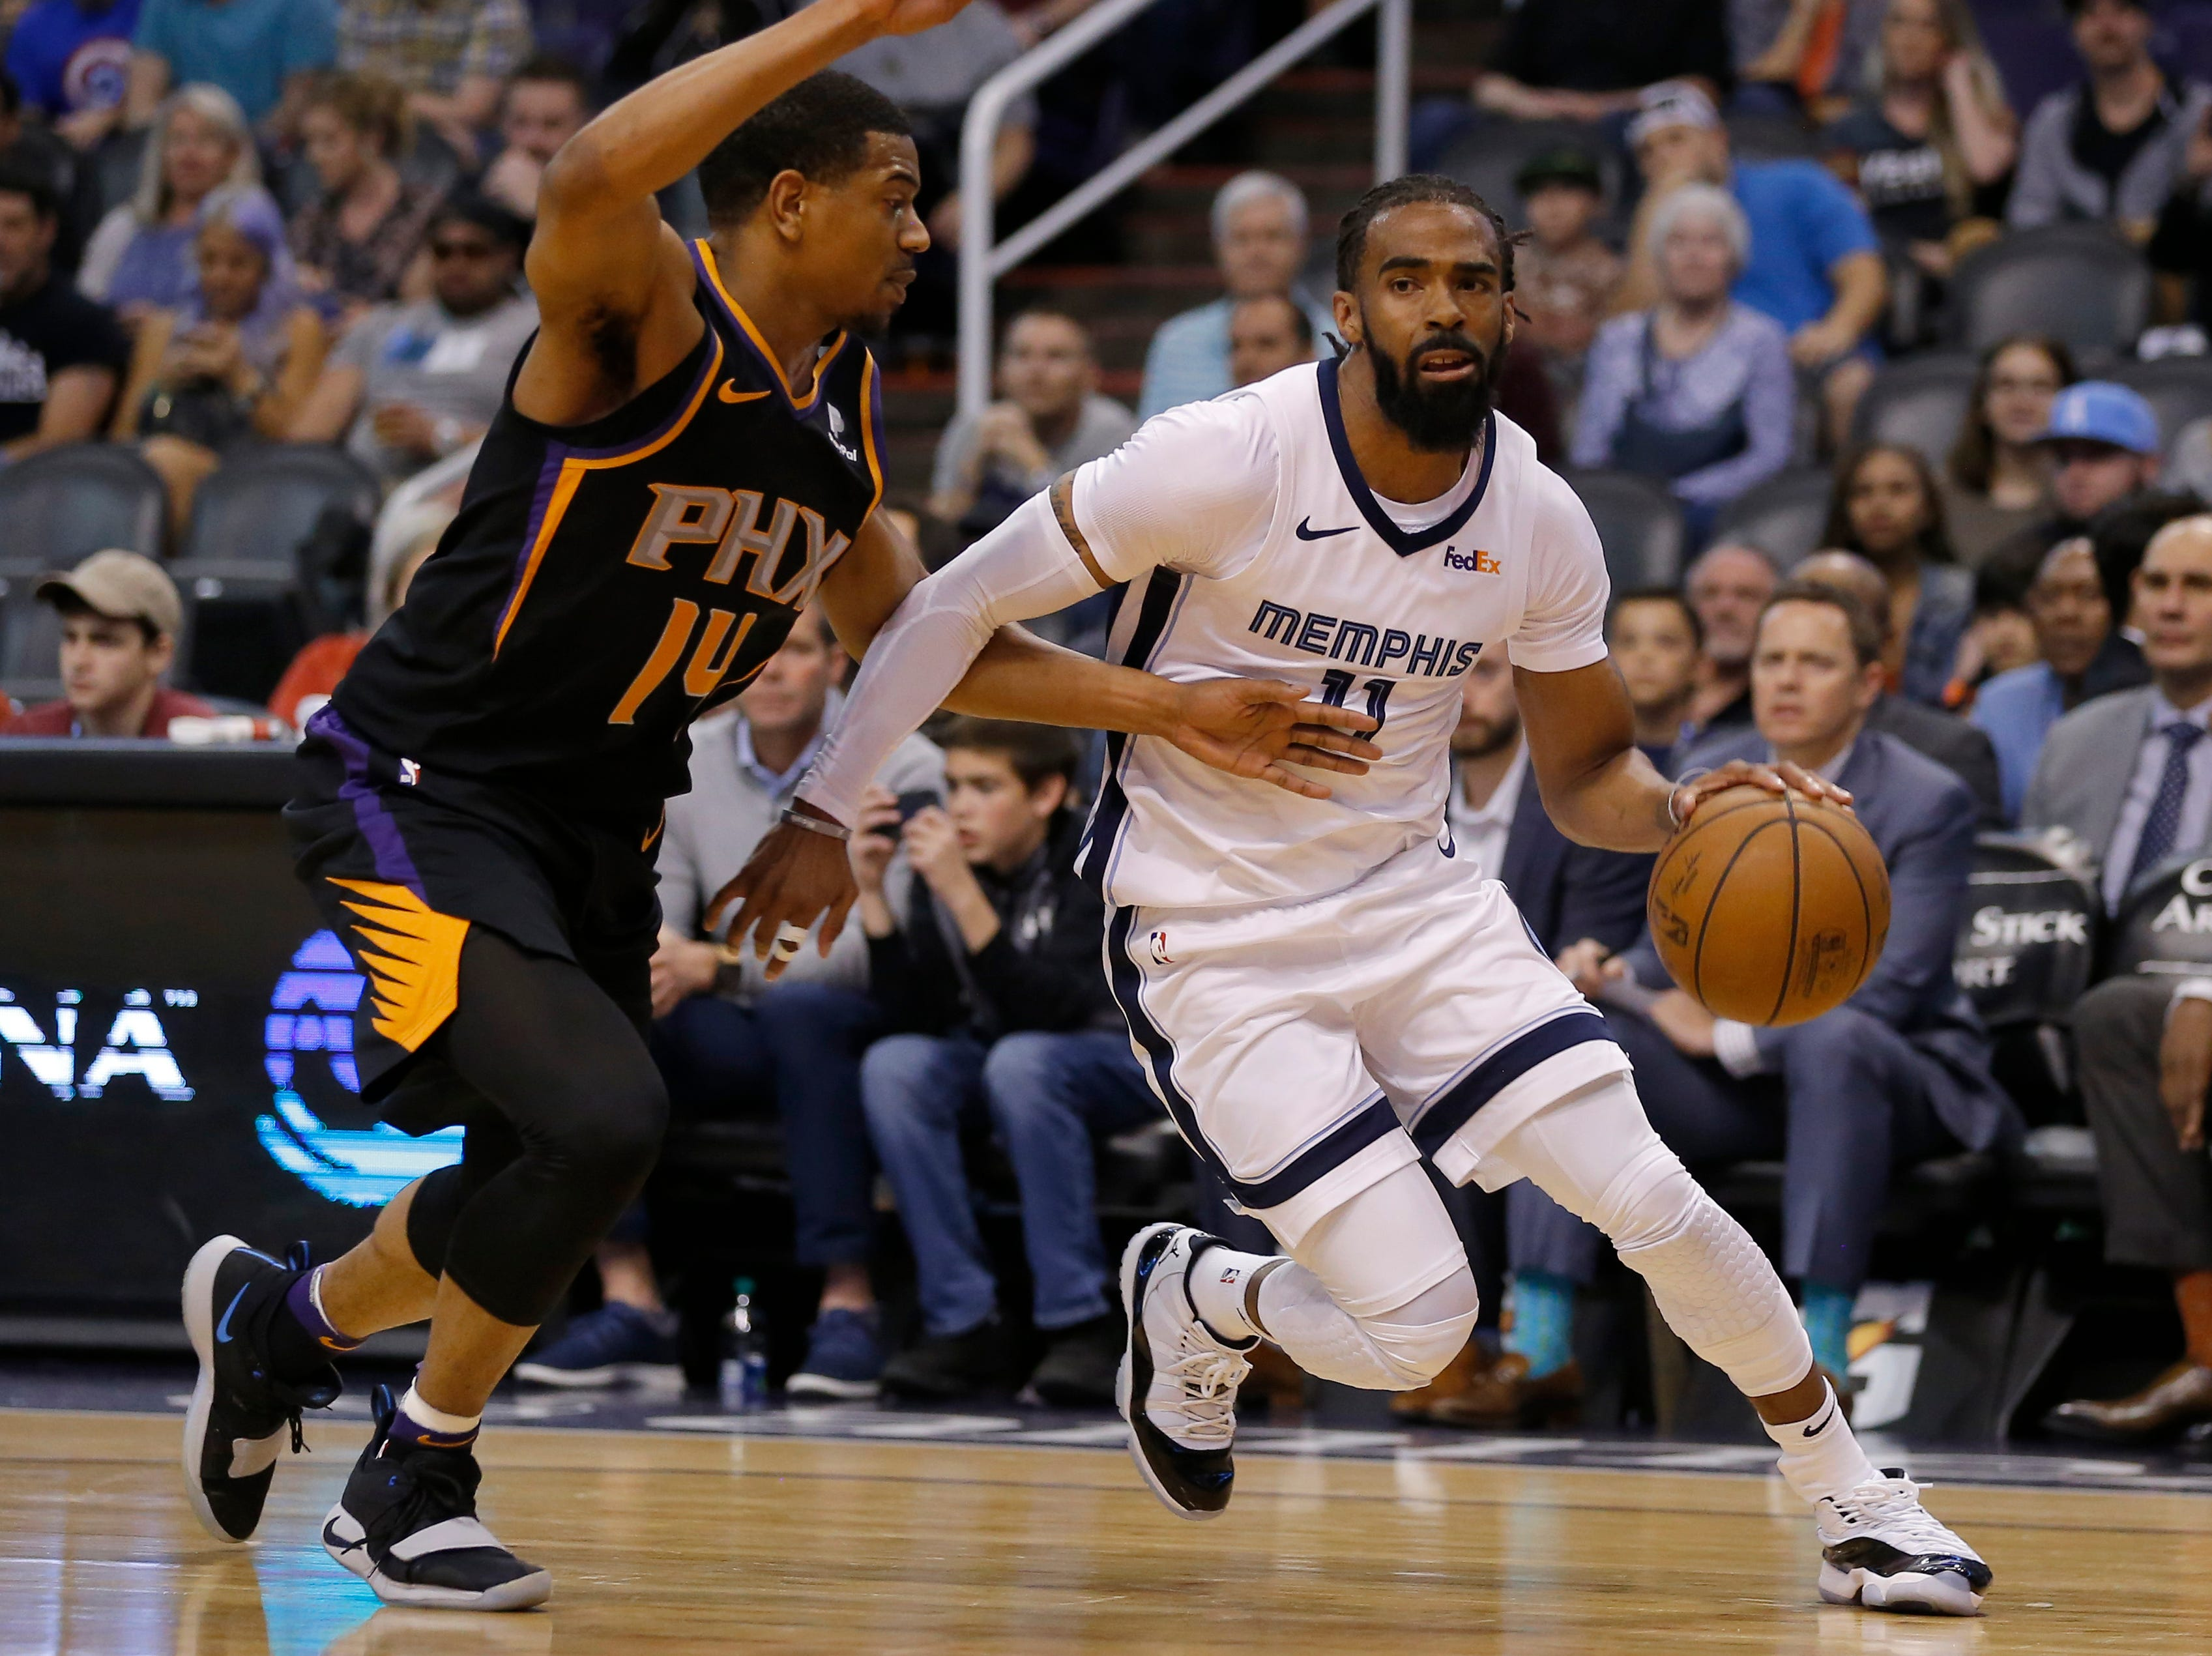 Memphis Grizzlies guard Mike Conley, right, drives past Phoenix Suns guard De'Anthony Melton, left, in the first half during an NBA basketball game, Saturday, March 30, 2019, in Phoenix. (AP Photo/Rick Scuteri)